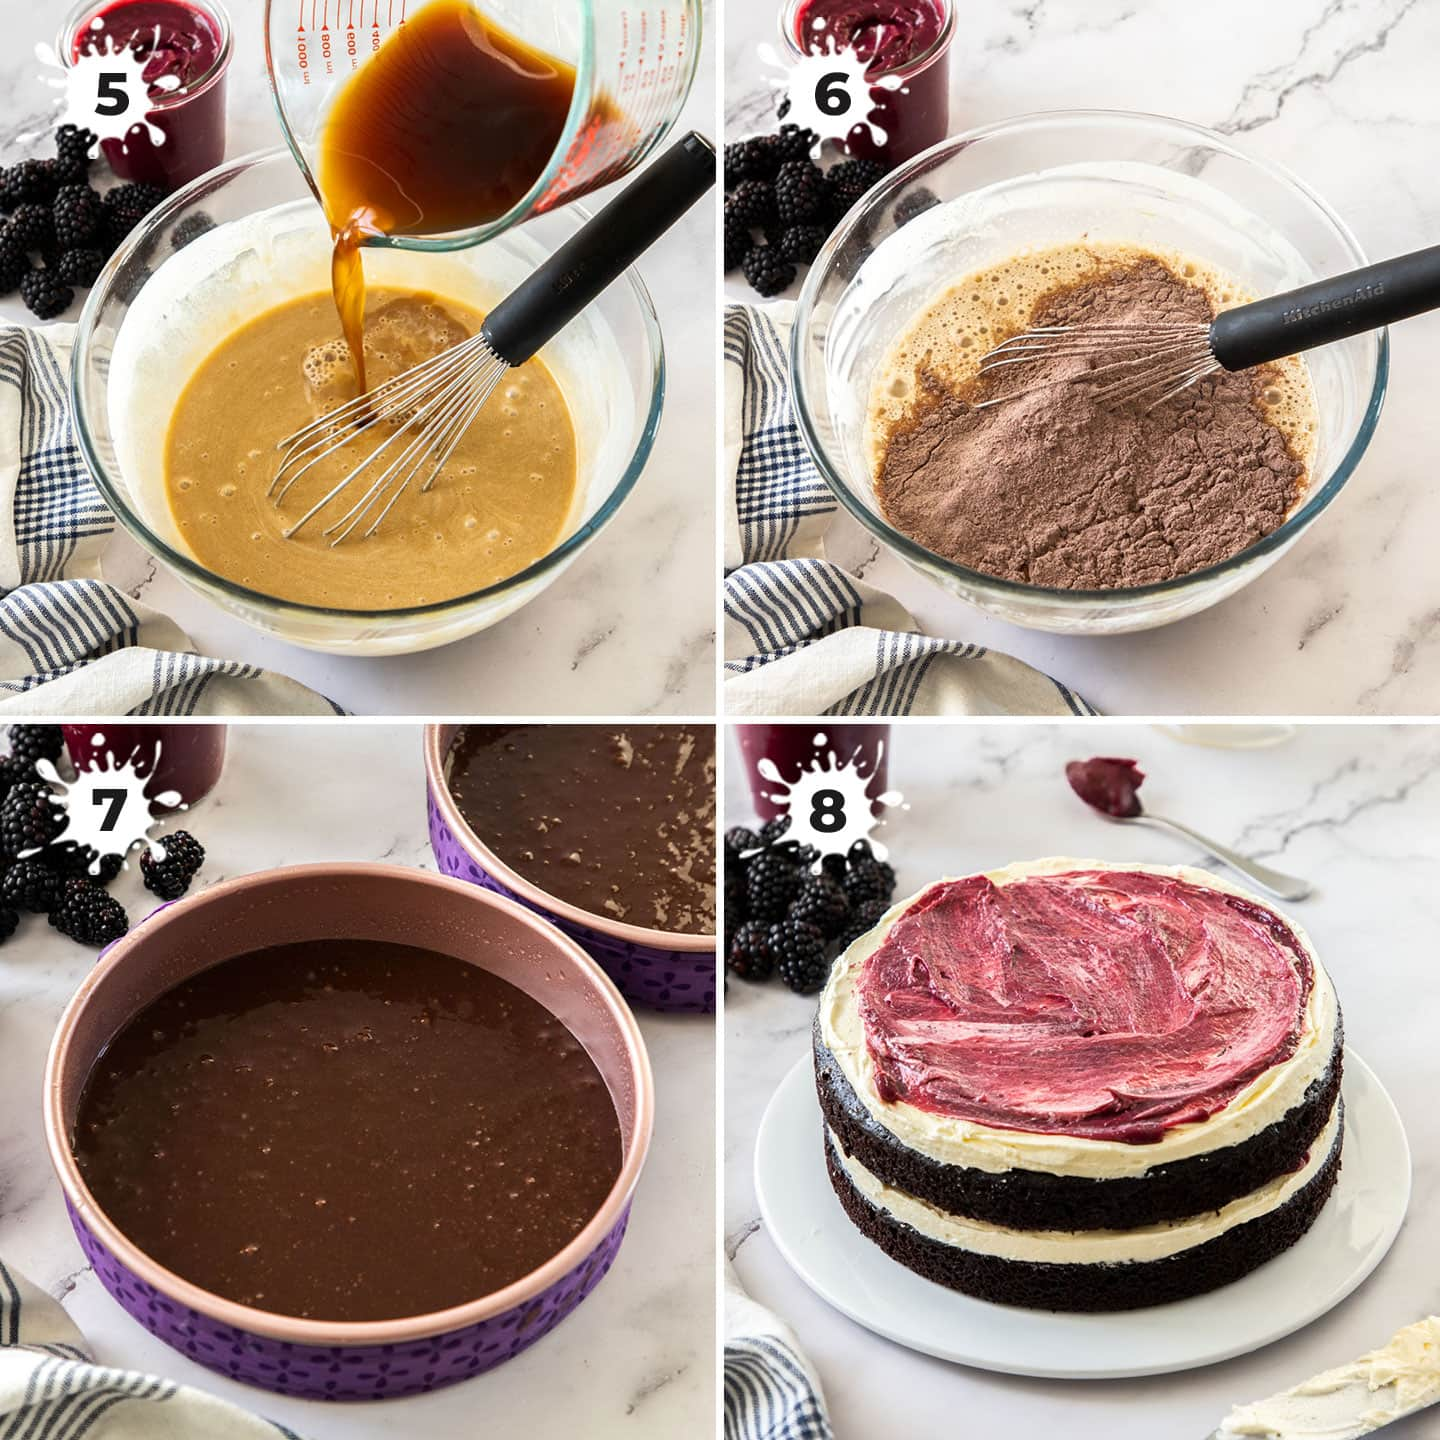 4 images showing how to make a chocolate cake